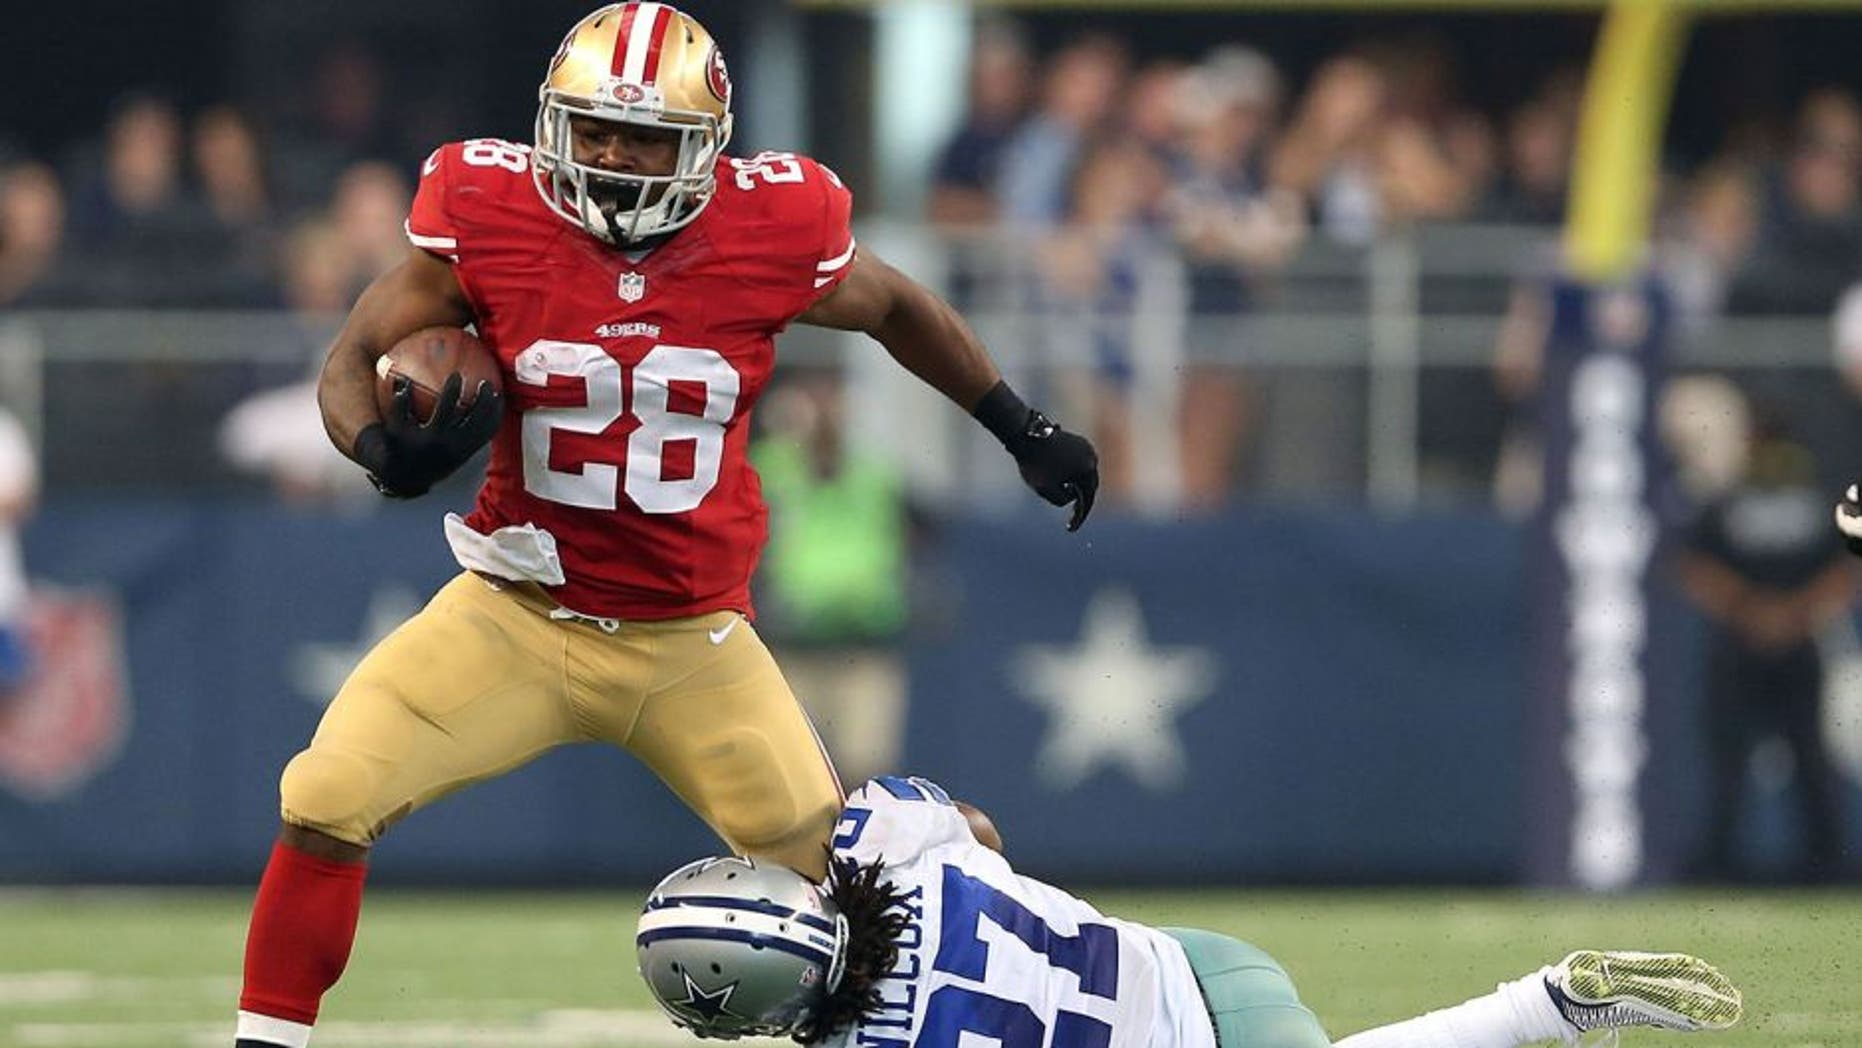 ARLINGTON, TX - SEPTEMBER 07: Carlos Hyde #28 of the San Francisco 49ers tries to break from the grasp of J.J. Wilcox #27 of the Dallas Cowboys in the second half at AT&T Stadium on September 7, 2014 in Arlington, Texas. (Photo by Christian Petersen/Getty Images)